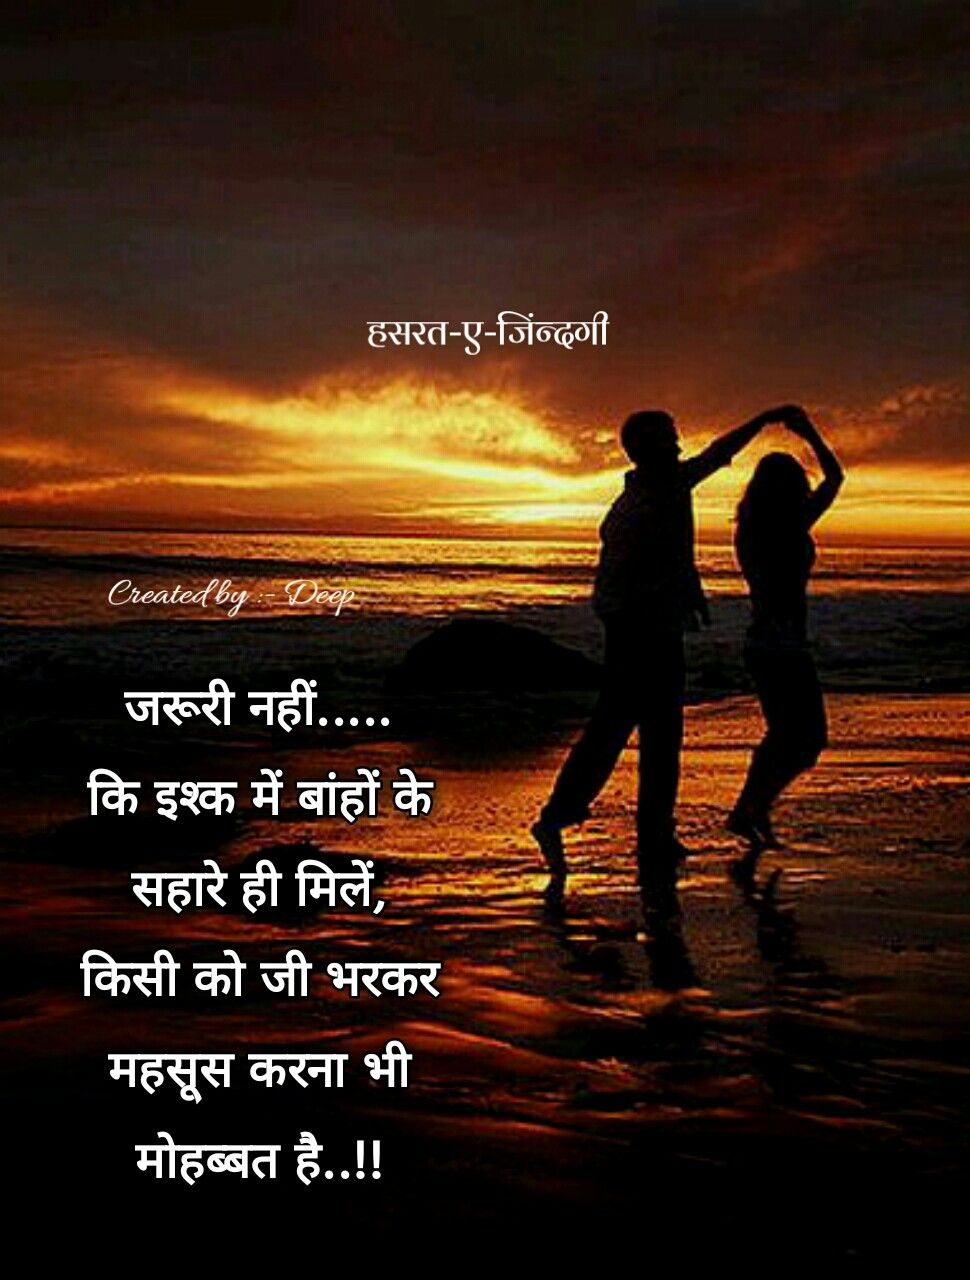 Pin By Deep On Love Love Quotes Love Heart Touching Lines